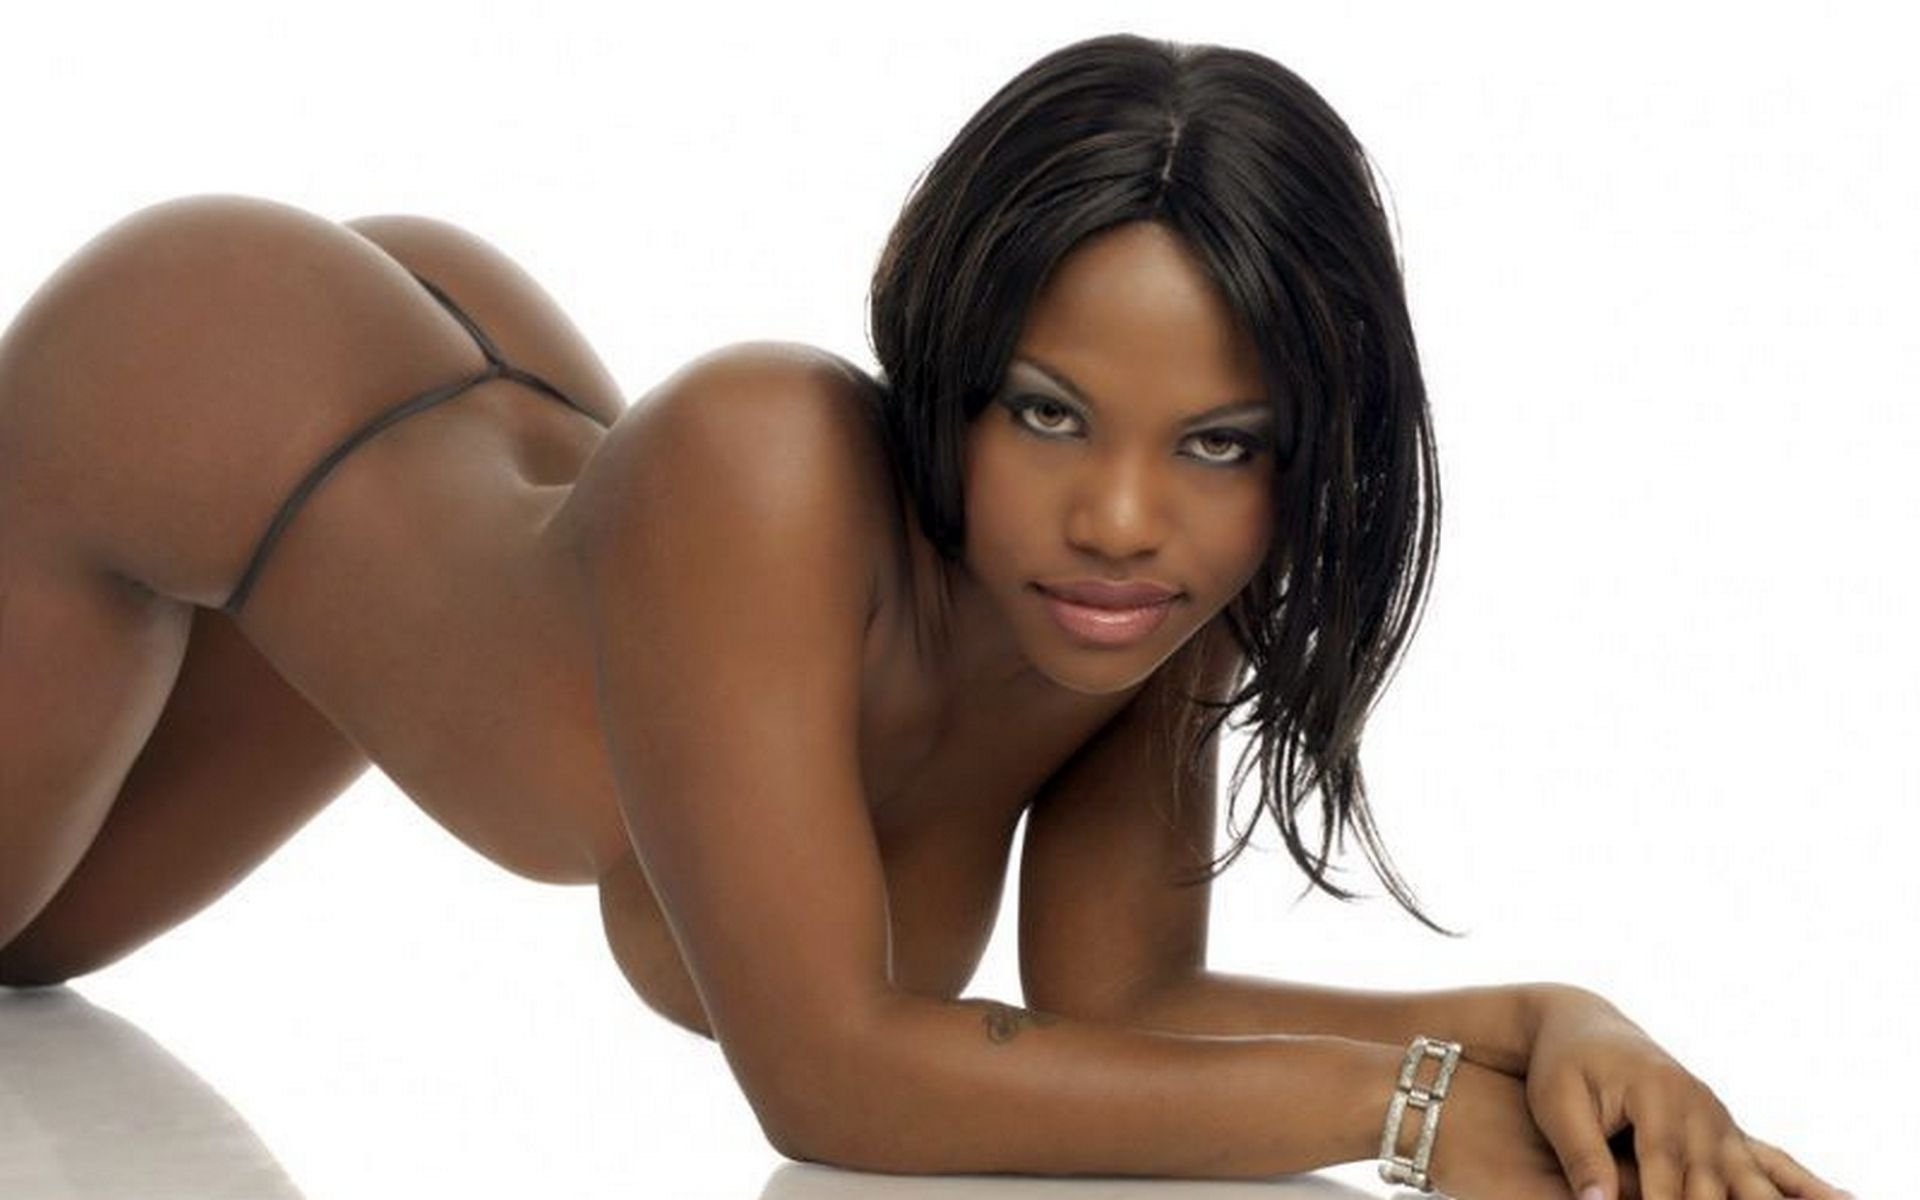 Knockers ebony girl video group sex stories